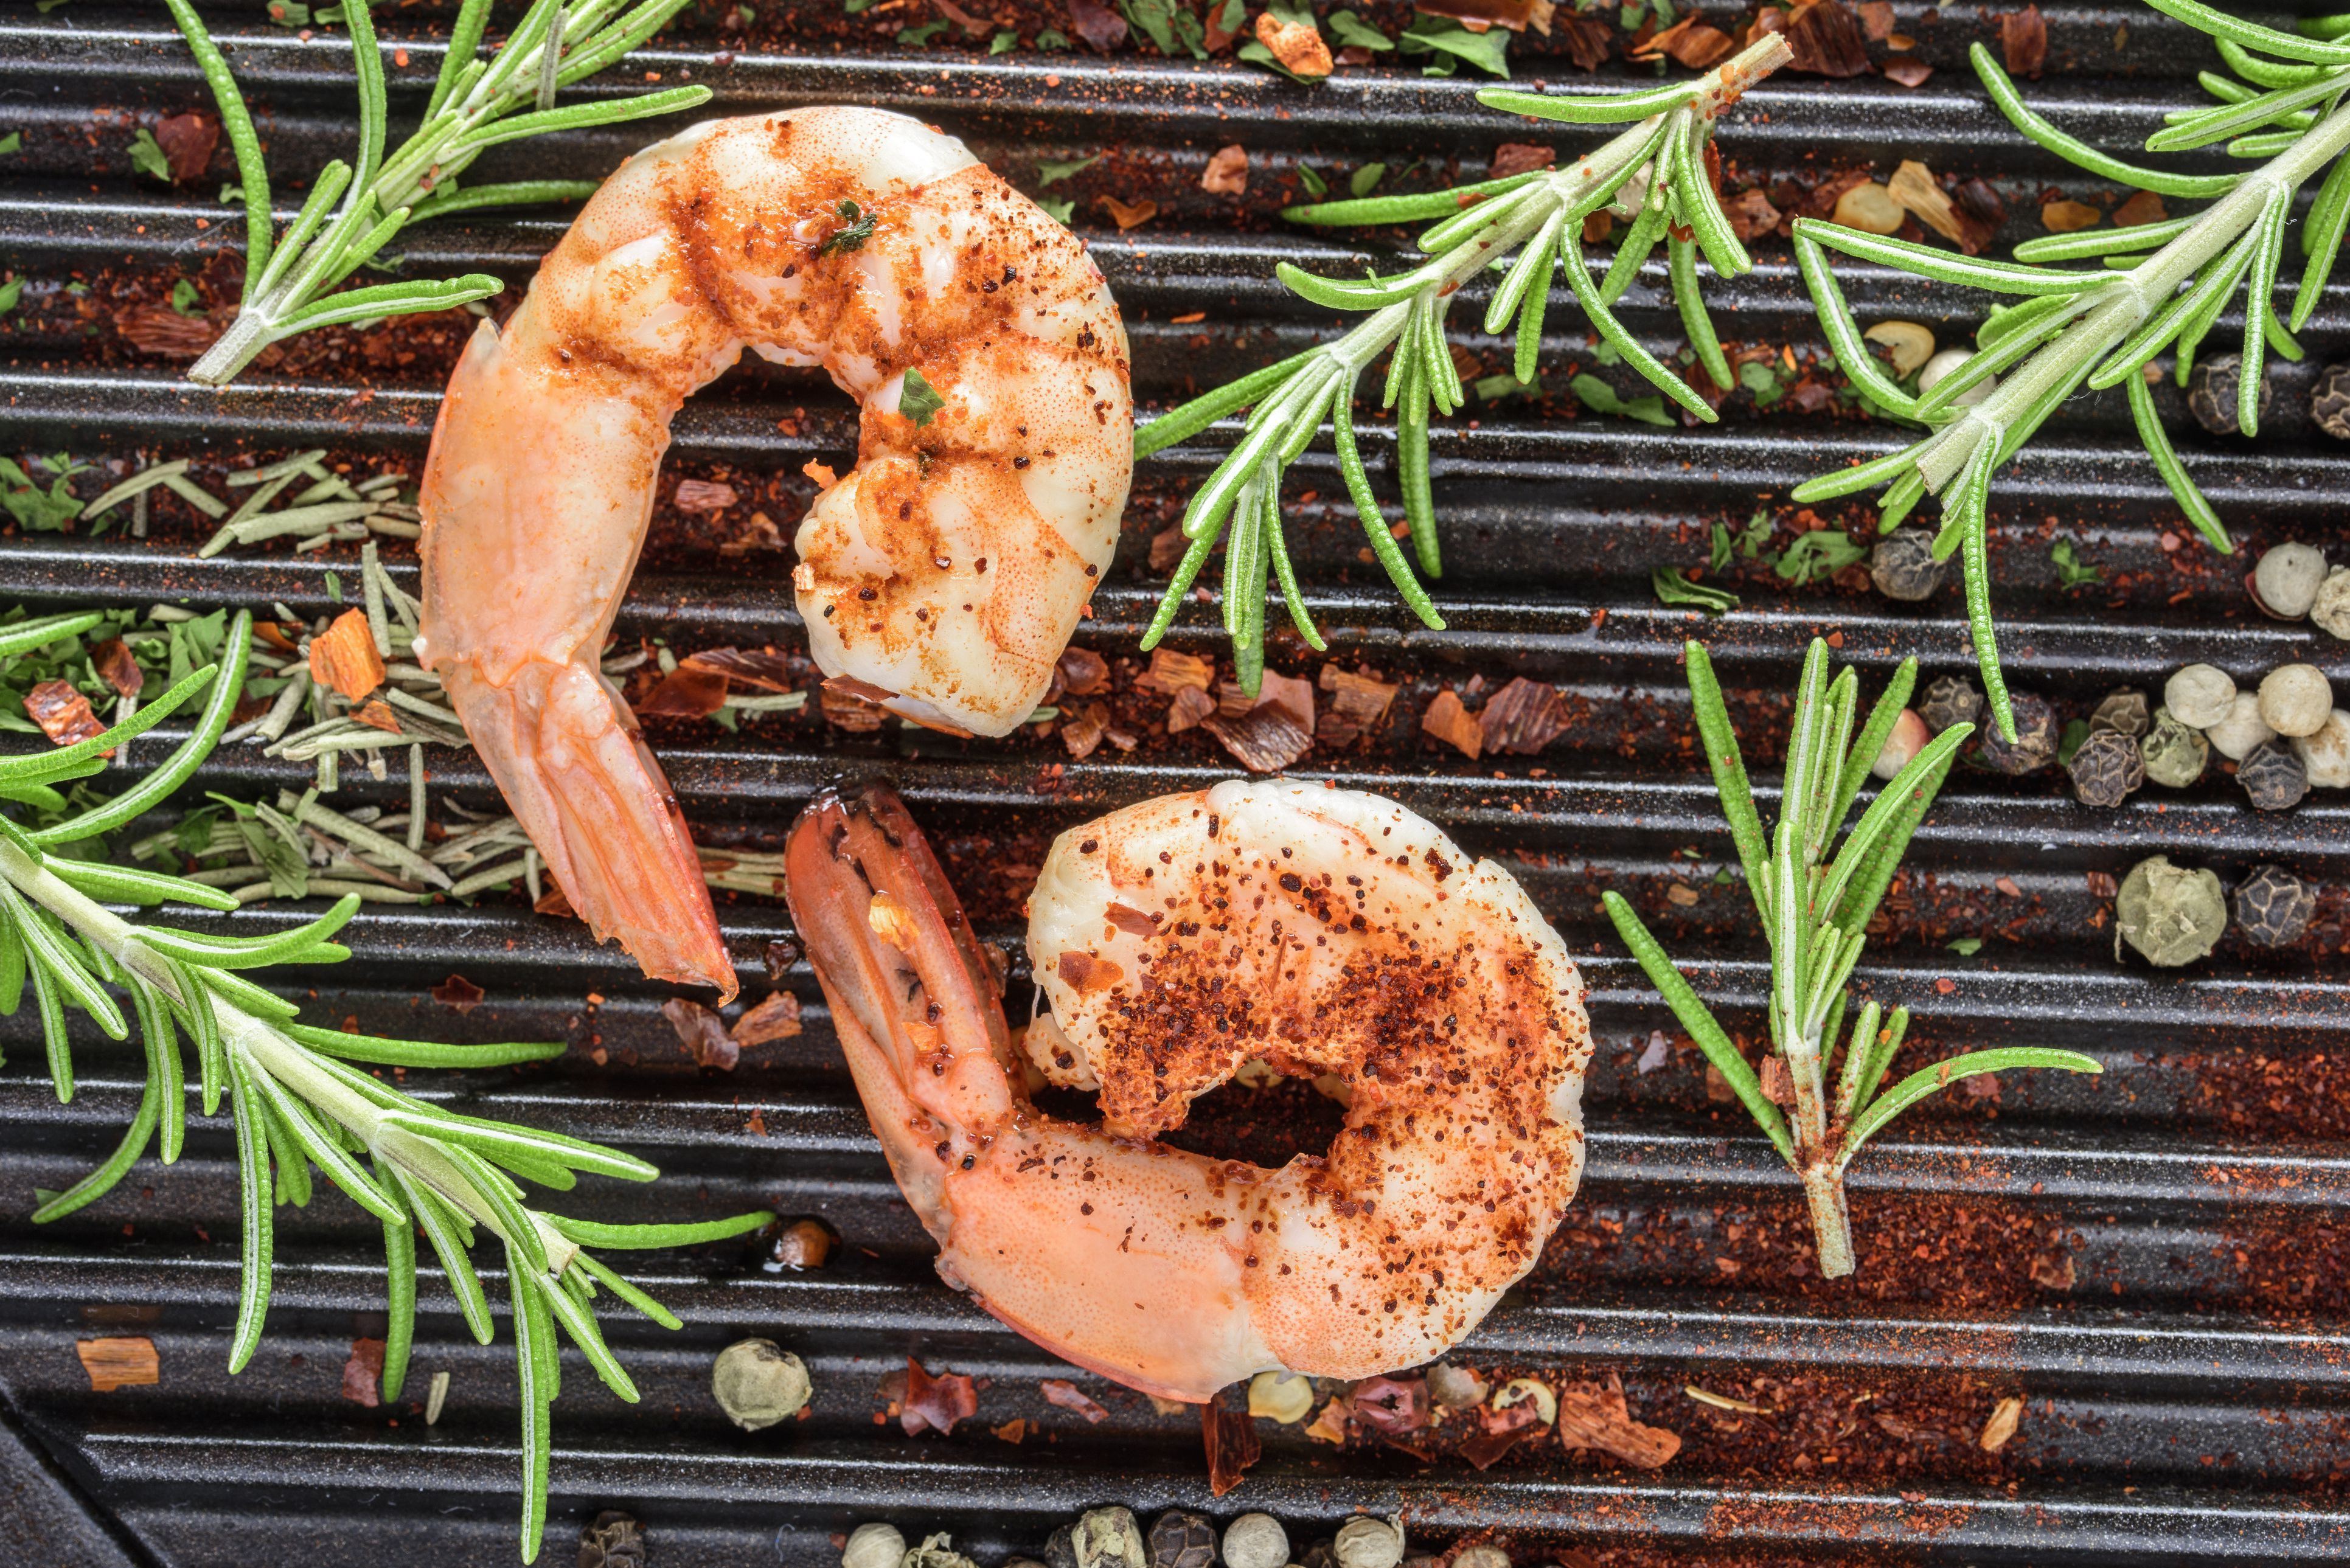 Seasoning Shrimp With Spices